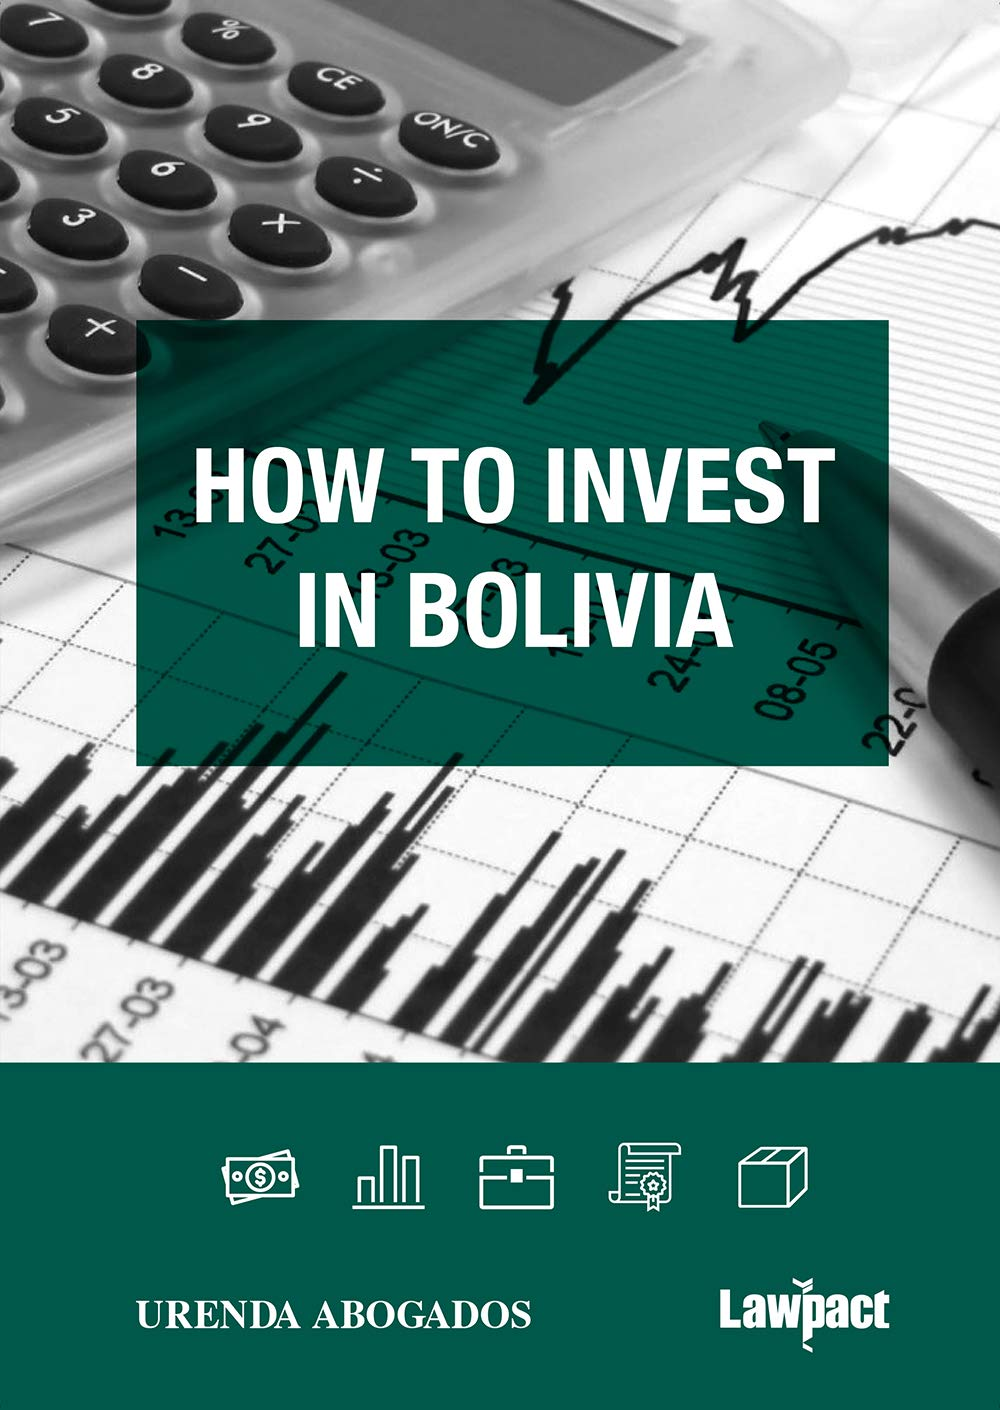 How to invest in Bolivia